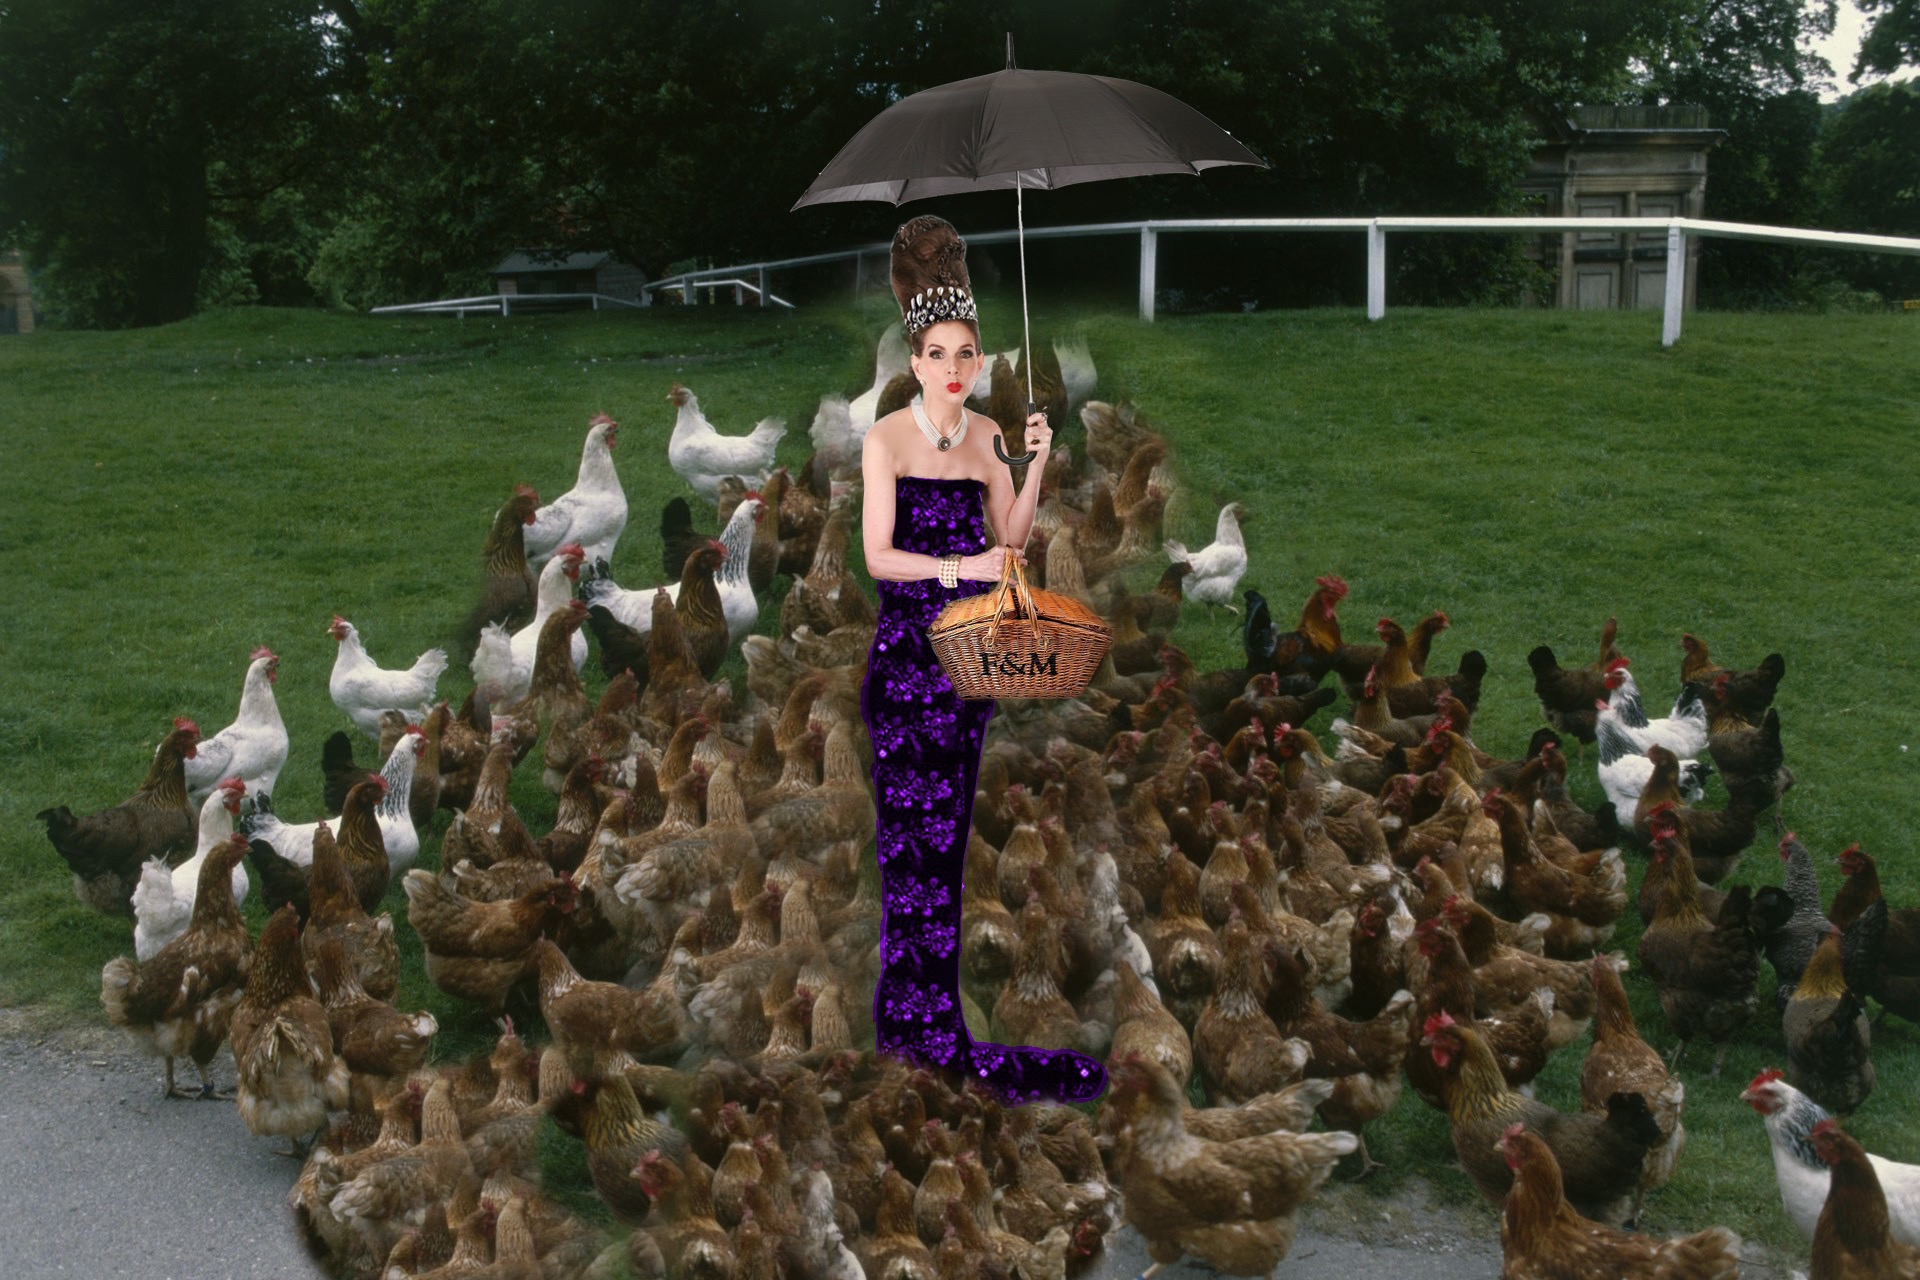 Tyne O'Connell with hens in park F&M picnic basket purple dress